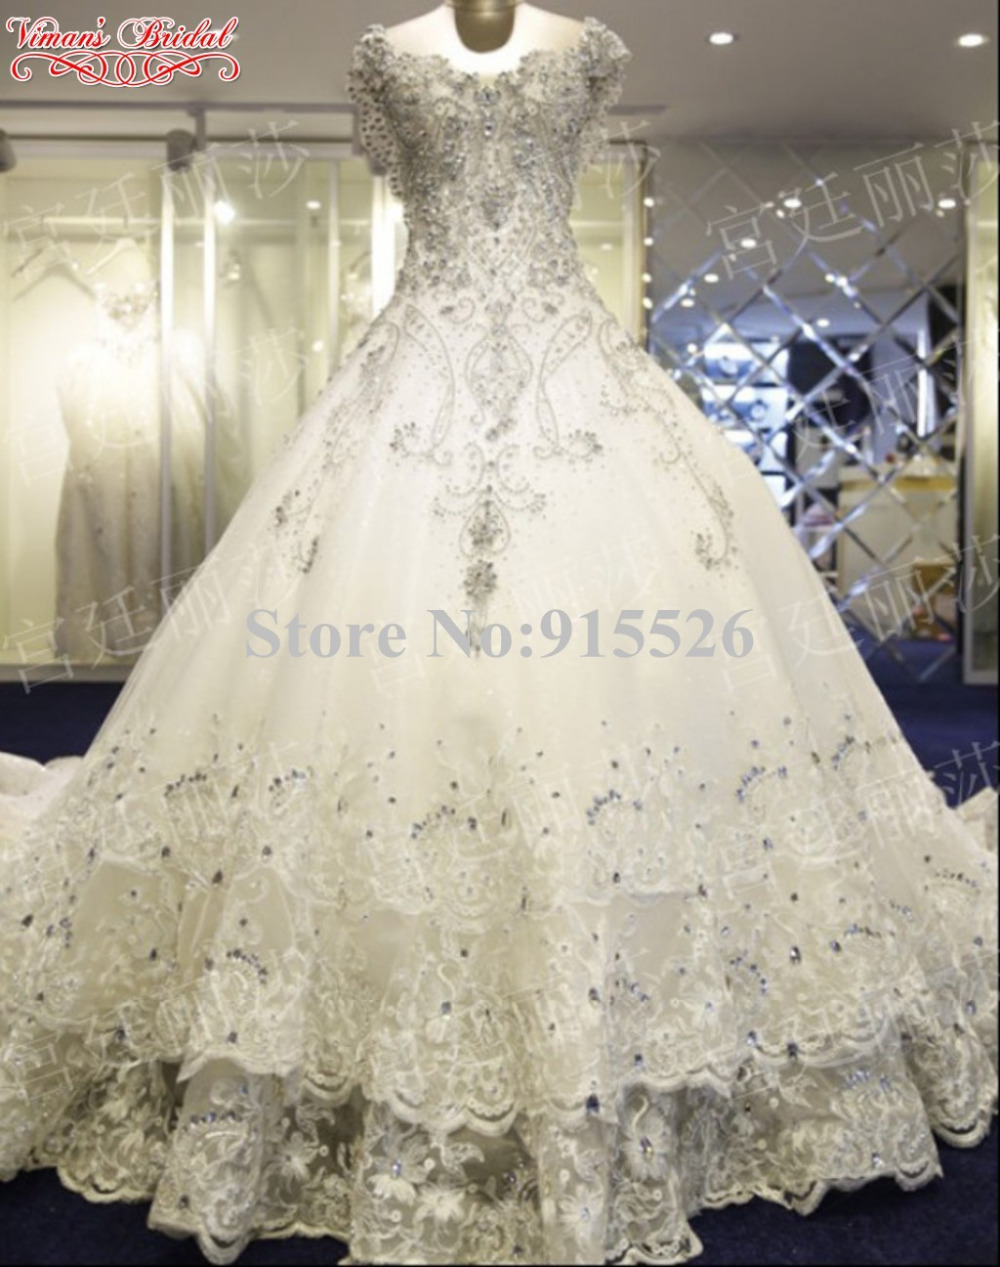 2015 new design wedding dress appliques lace beading for Crystal design wedding dresses price